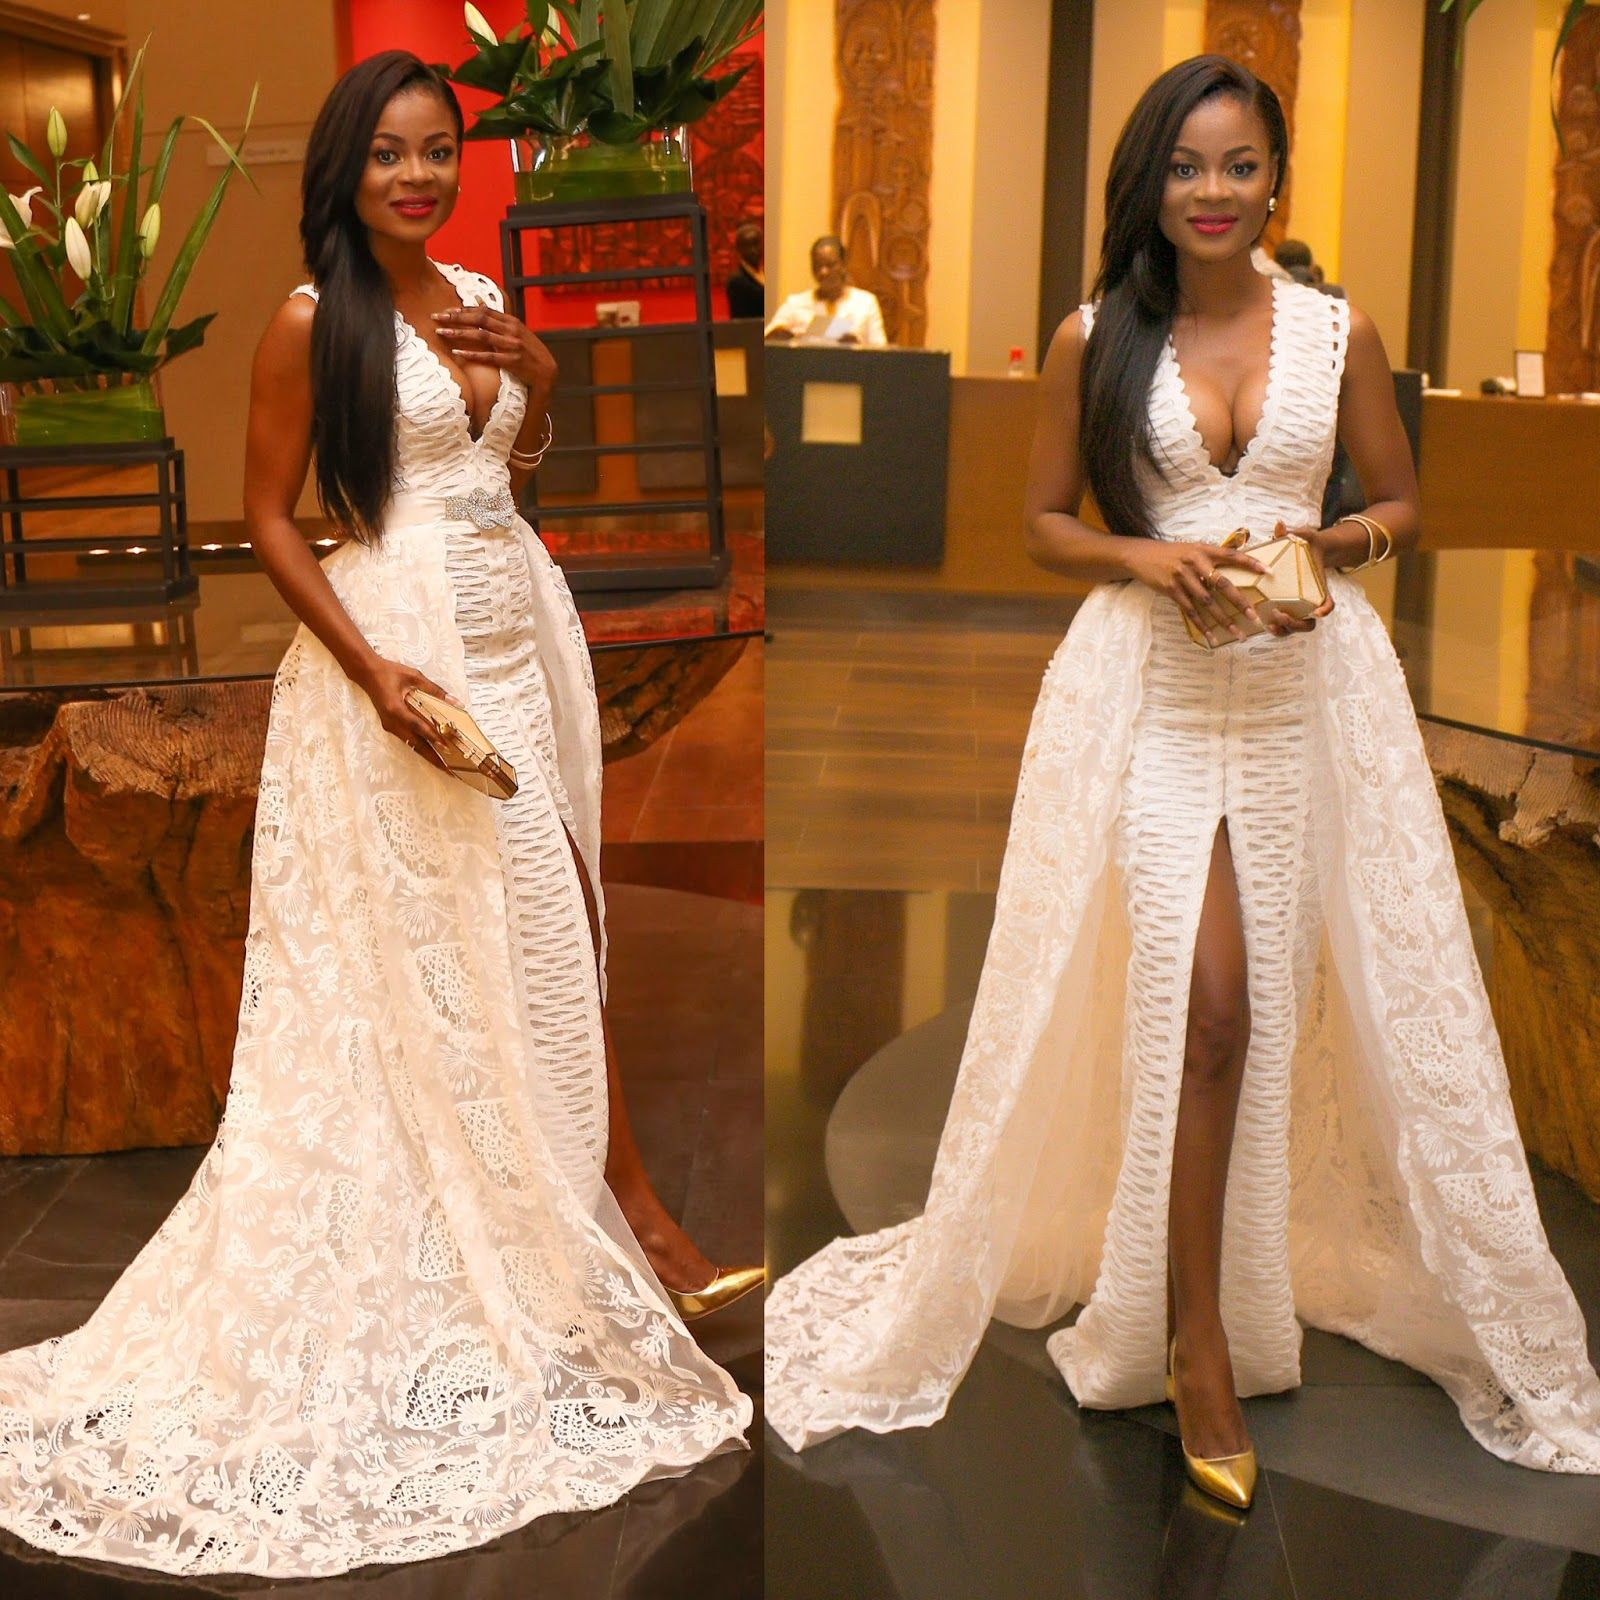 Lace short dress styles in nigeria  Engagement Party Dress Style by Trey  braut  Pinterest